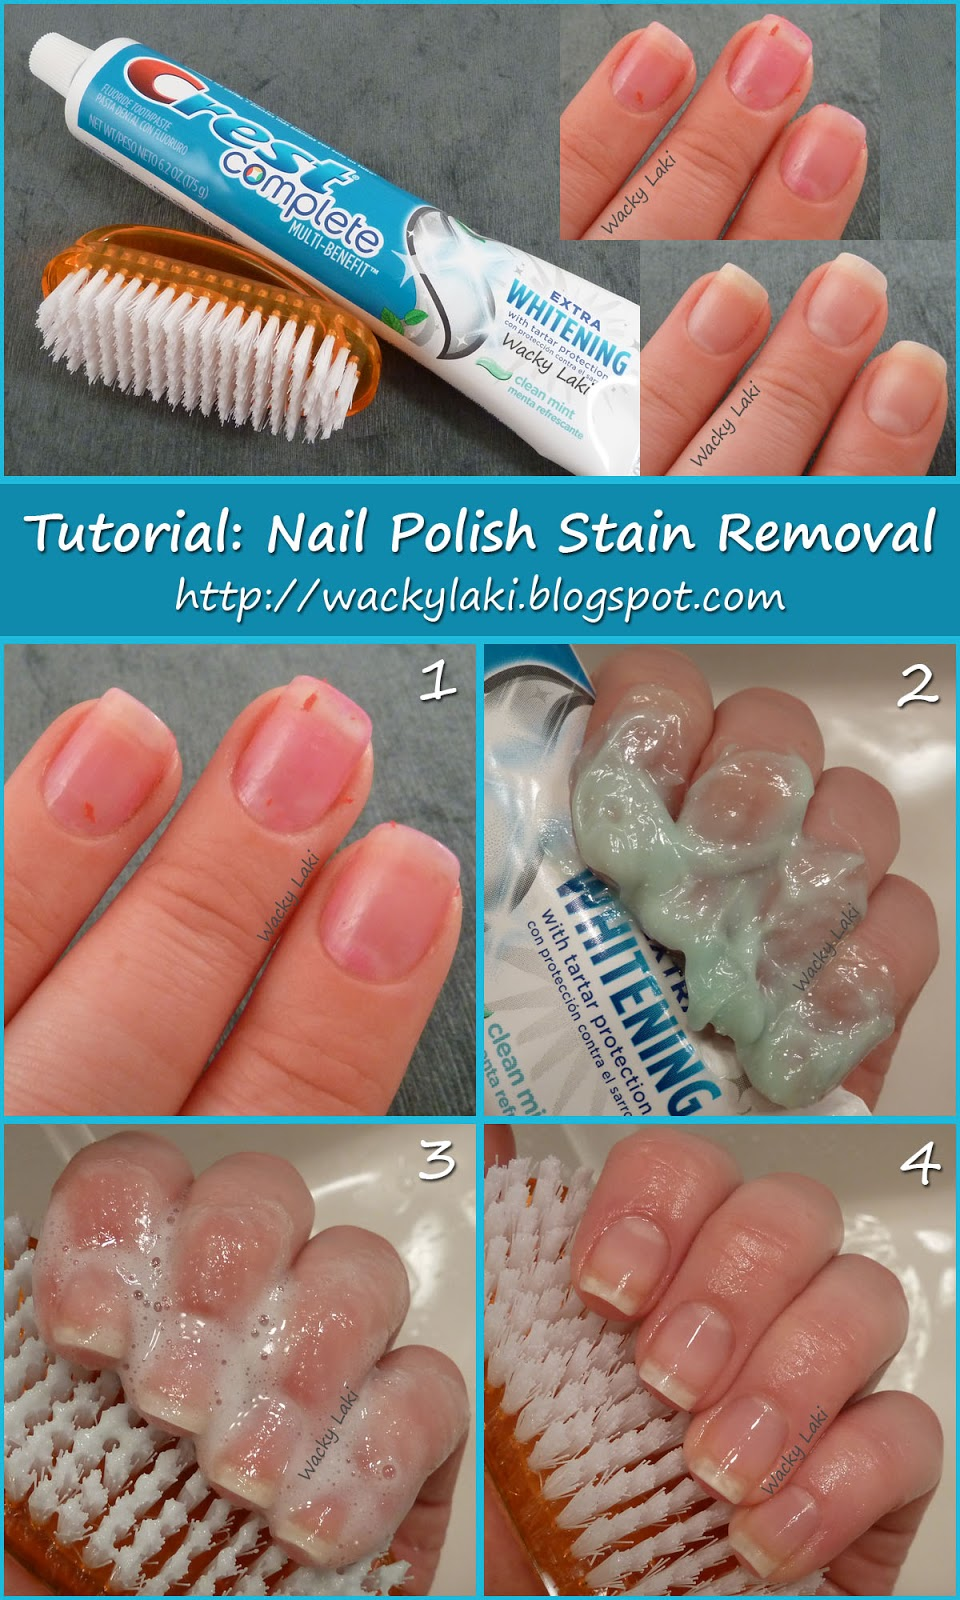 How To Clean Stained Gel Nails : clean, stained, nails, Wacky, Laki:, Tutorial, Tuesday:, Polish, Stain, Removal